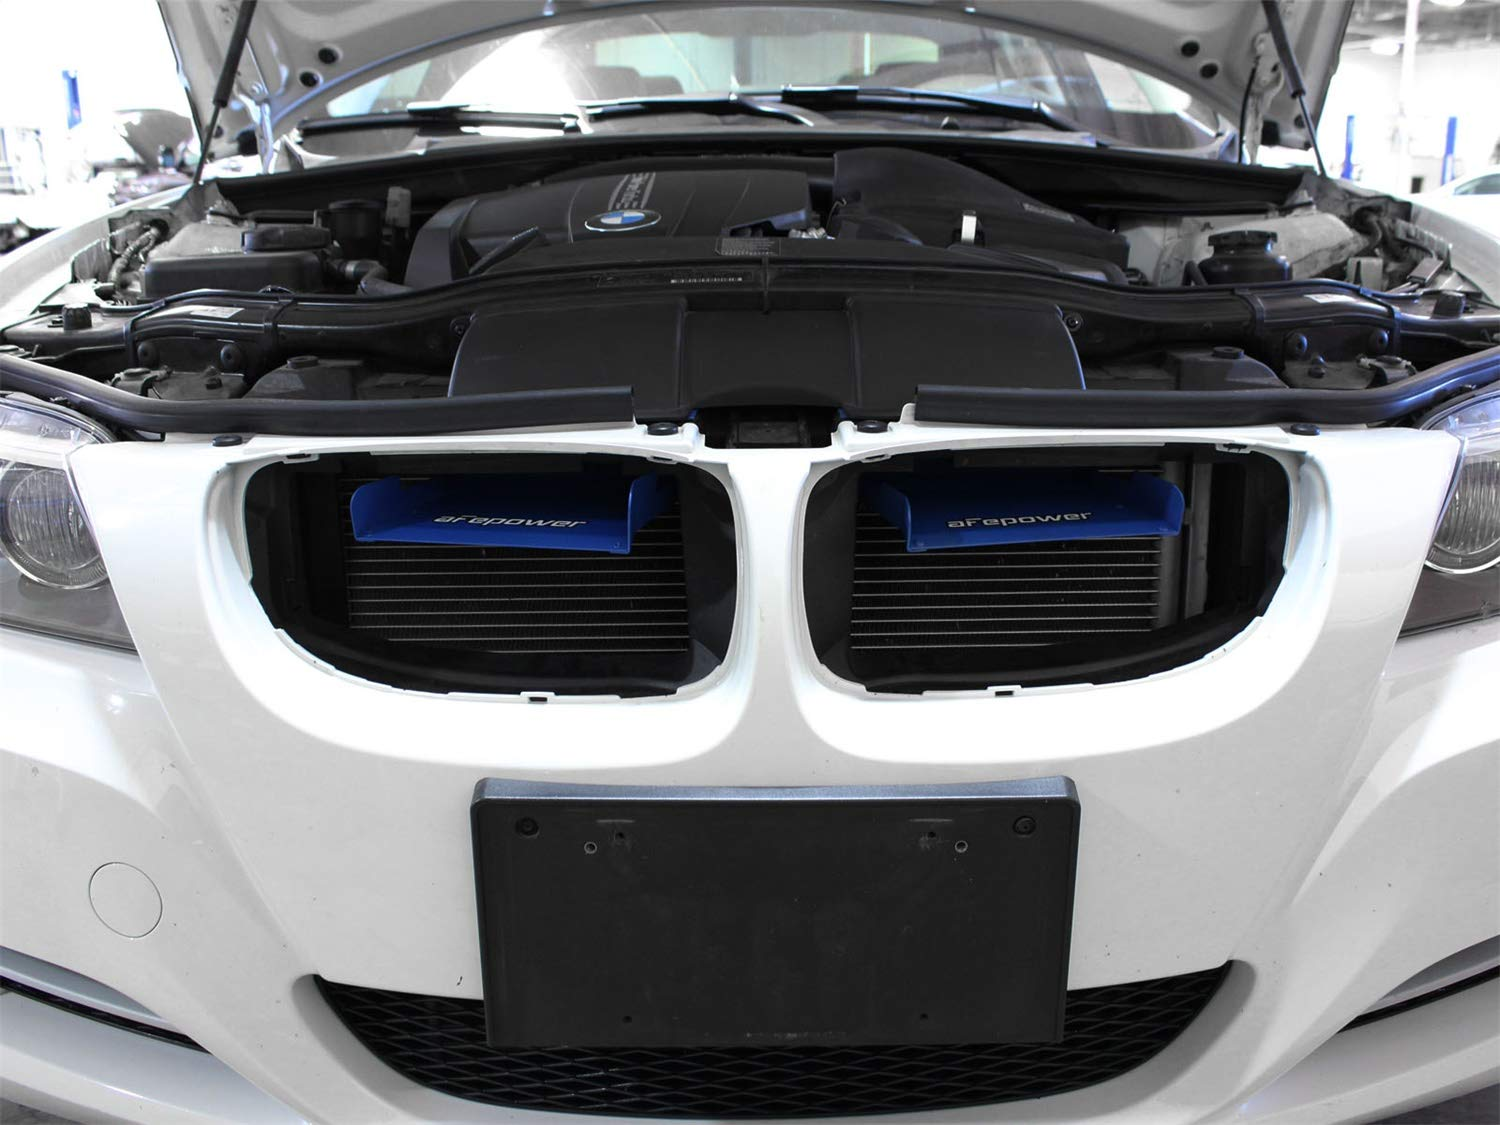 aFe Power Magnum FORCE 54-11478-L BMW 3-Series (E9x) Intake System Scoops (Matte Blue) by aFe Power (Image #7)